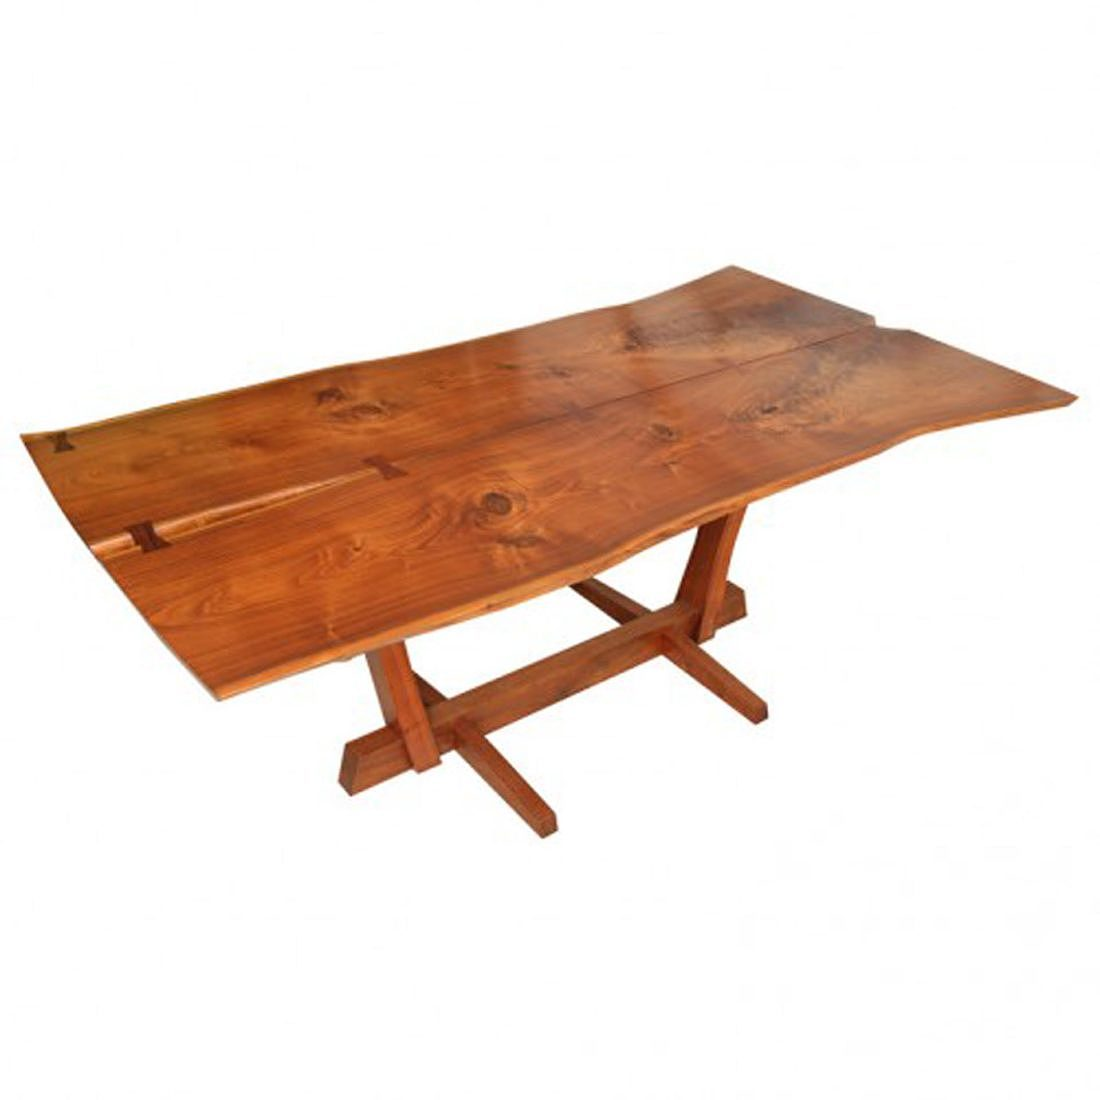 george-nakashima-table